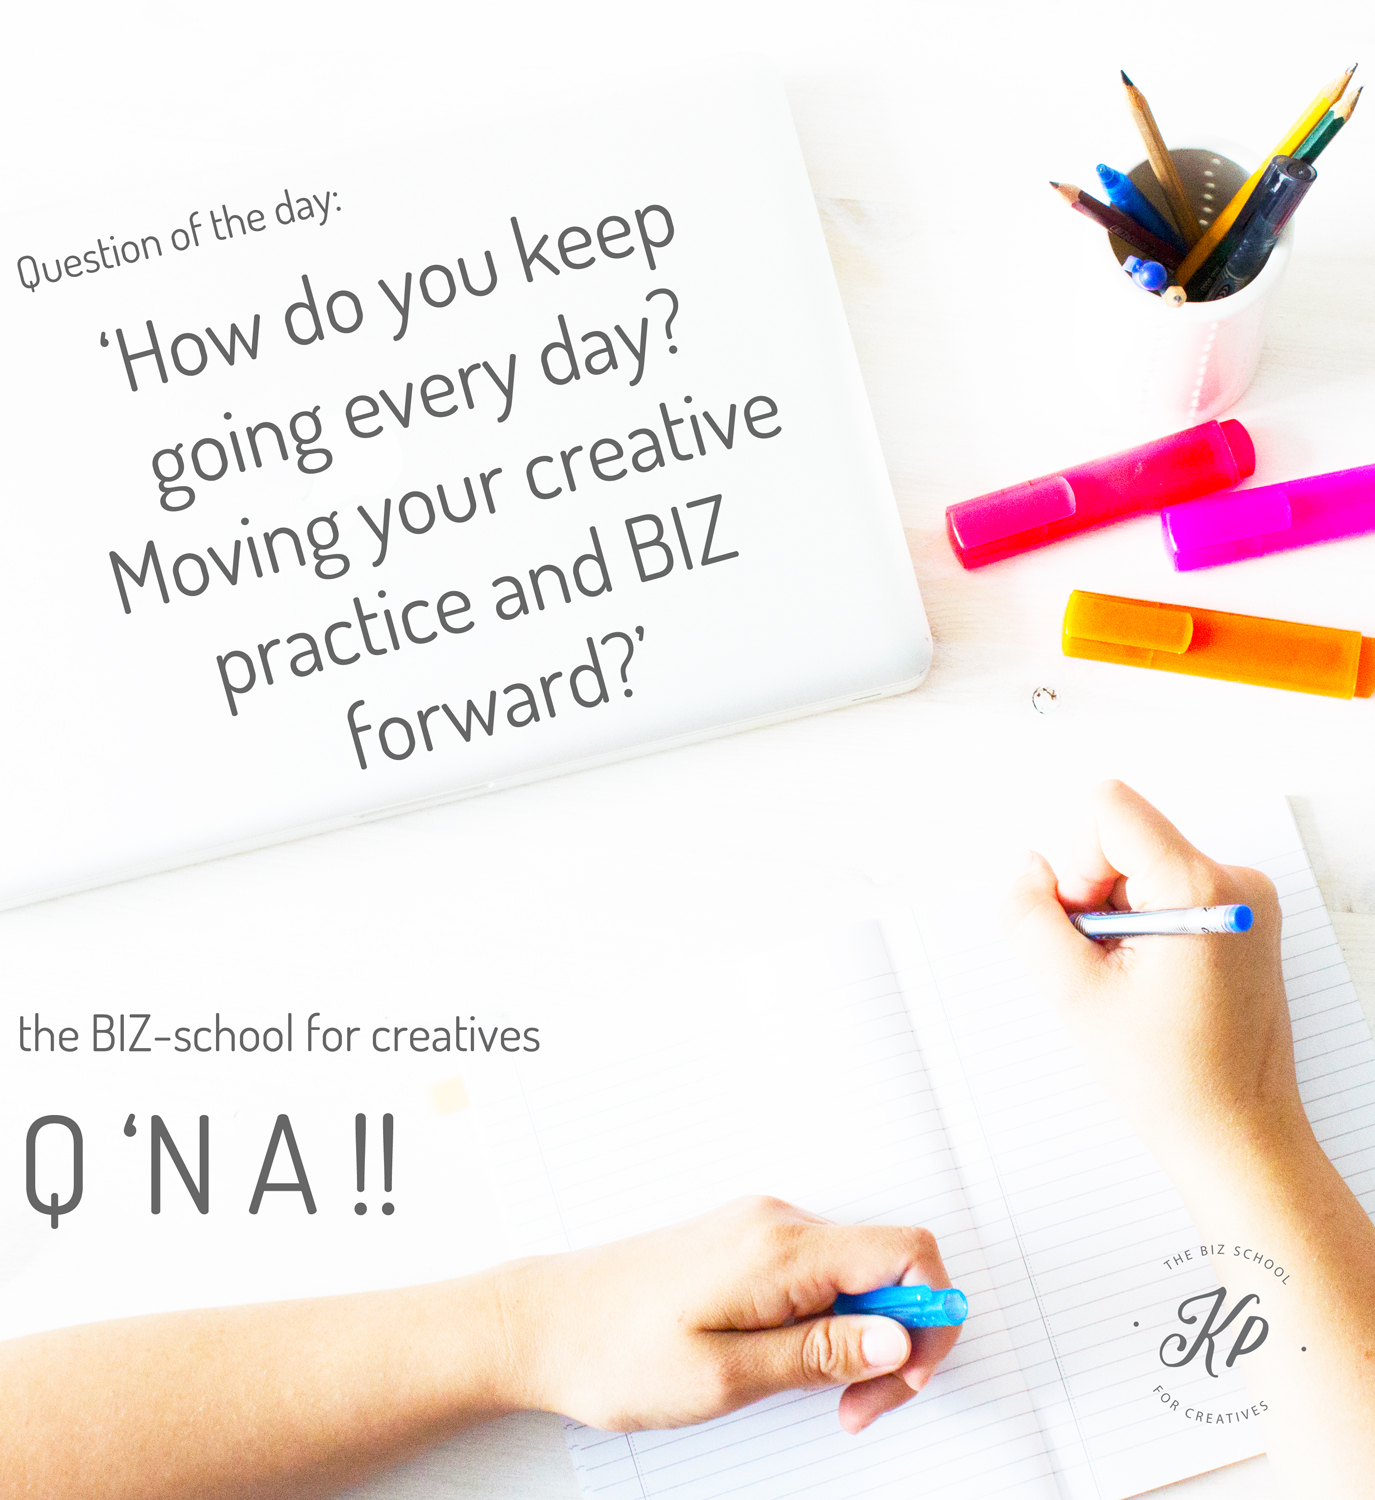 the BIZ-school for creatives Q 'N A, Question of the day: 'How do you keep going every day? Moving your creative practice and BIZ forward?' Read the full answer at www.kerstinpressler.com